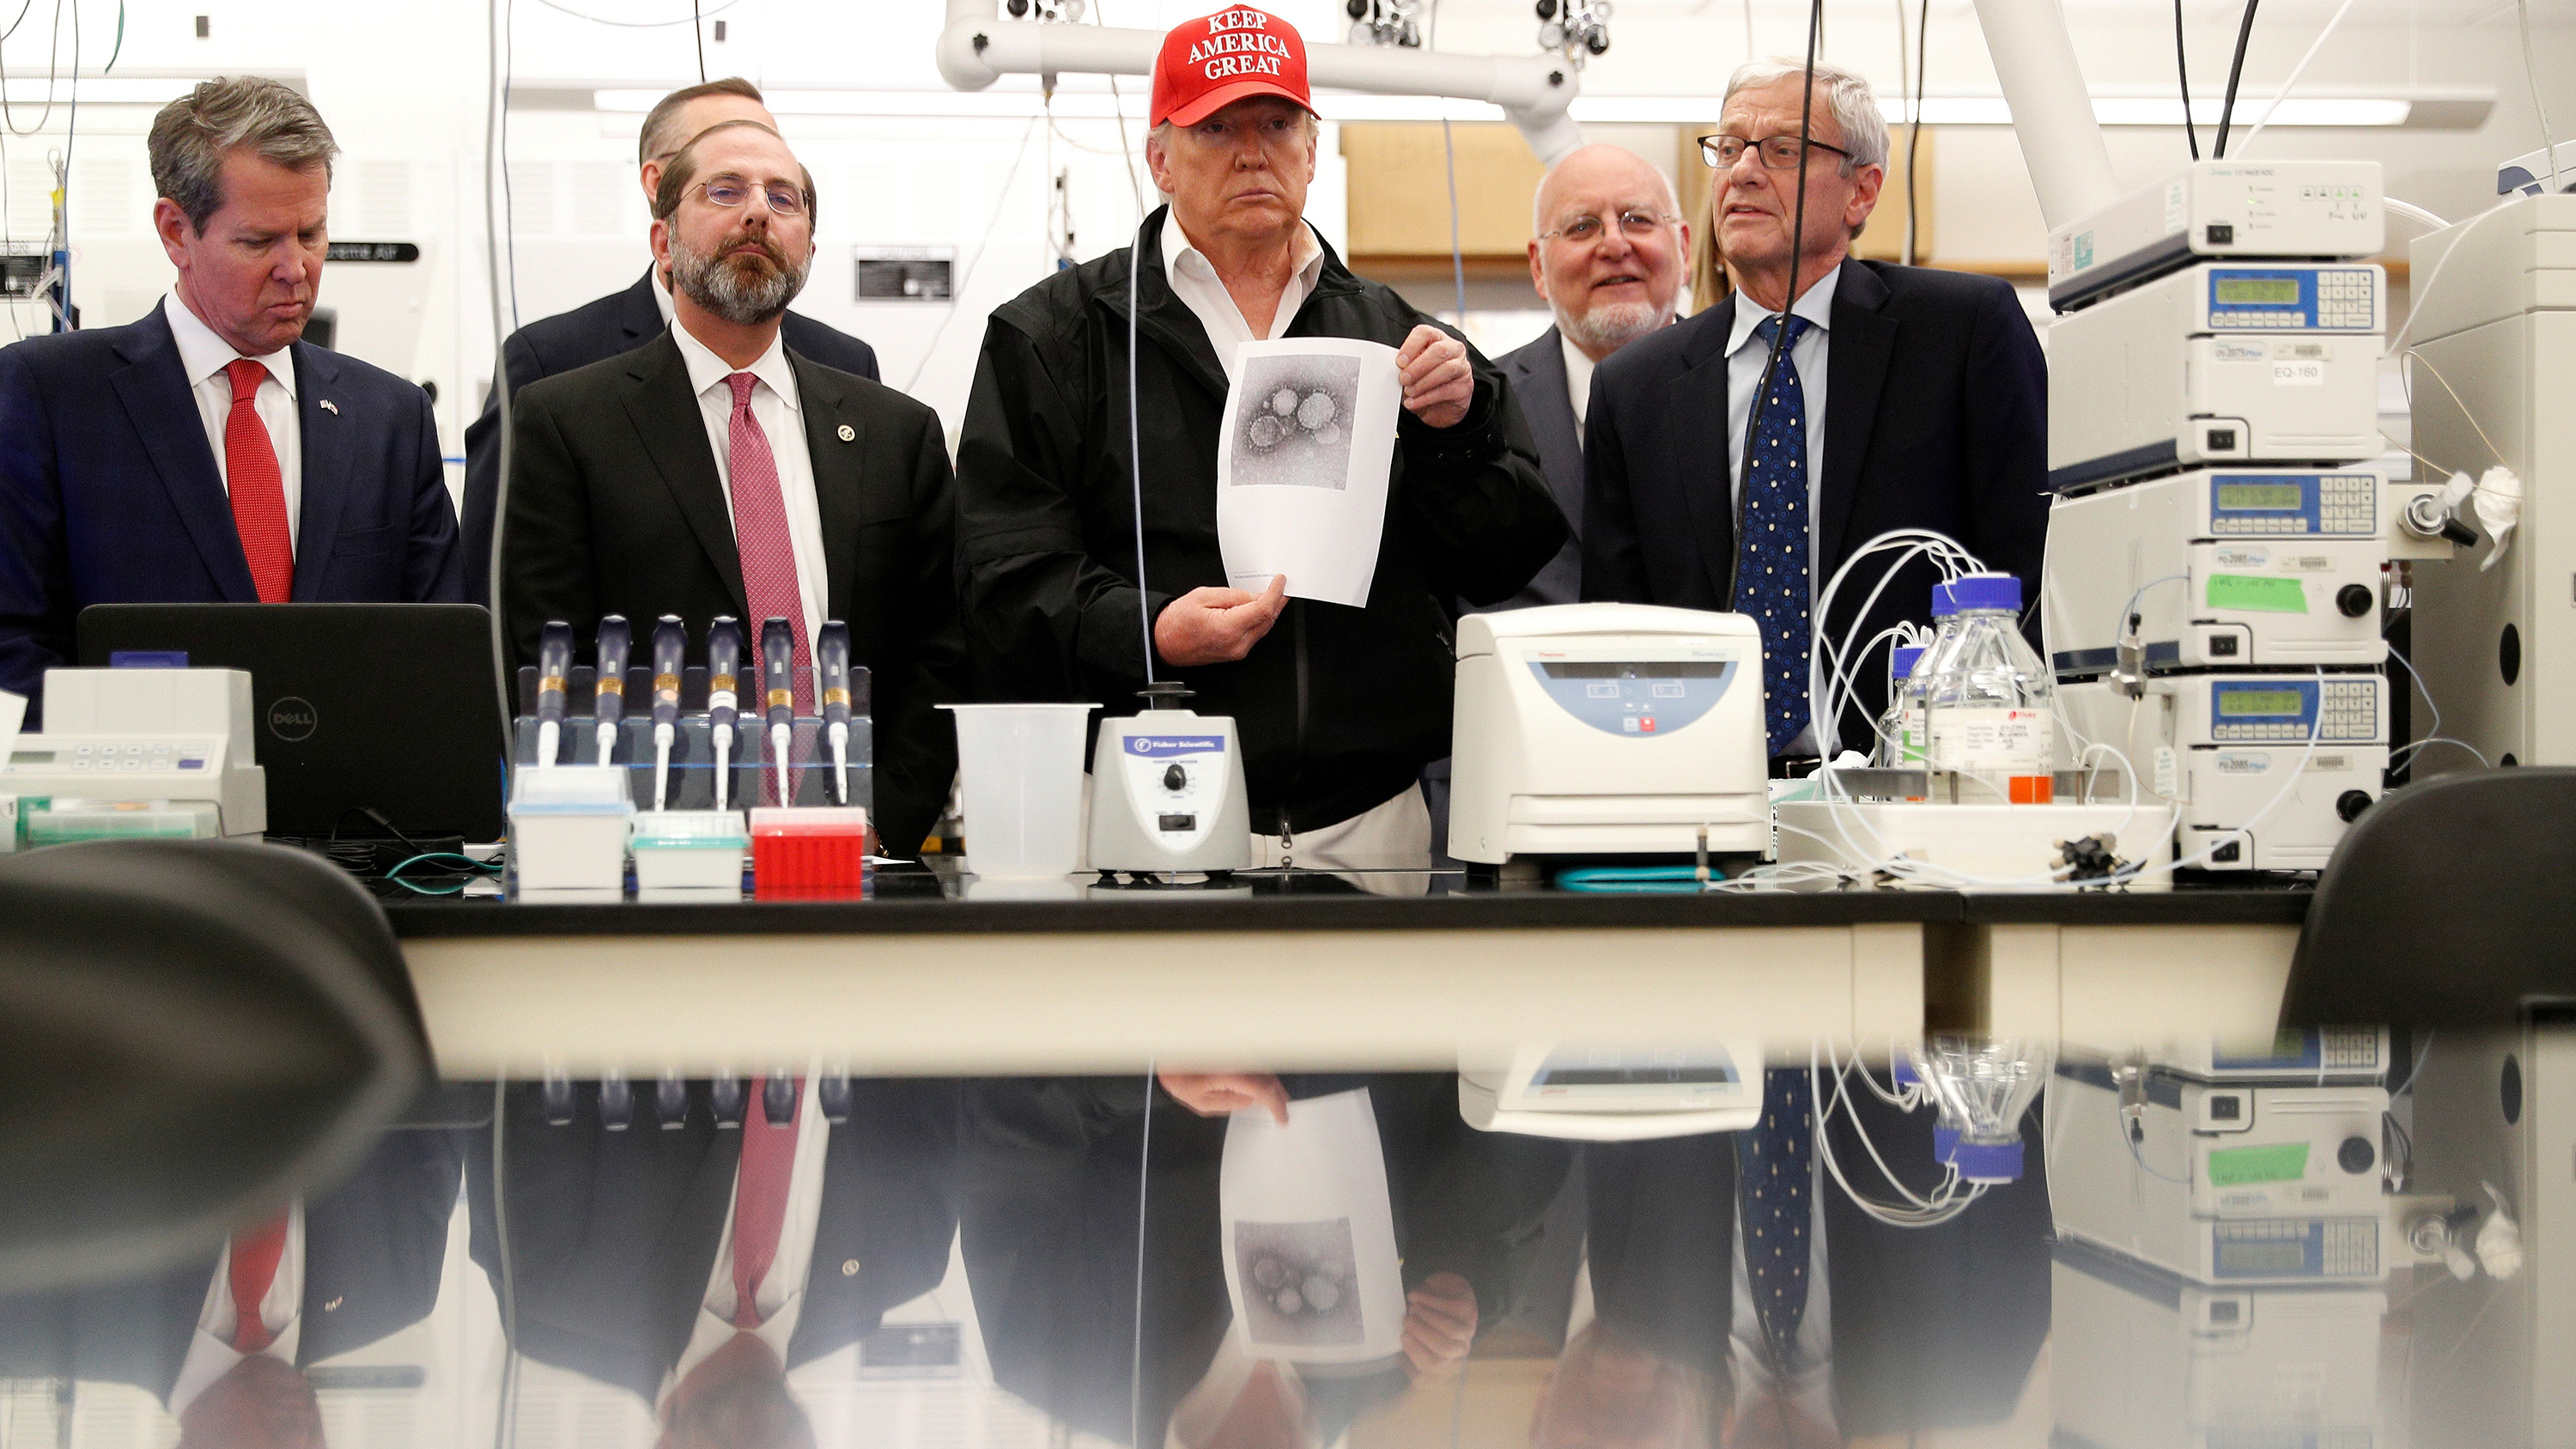 "The photo shows President Trump and several others in a laboratory setting. The president is wearing a red ""Make America Great Again"" hat."